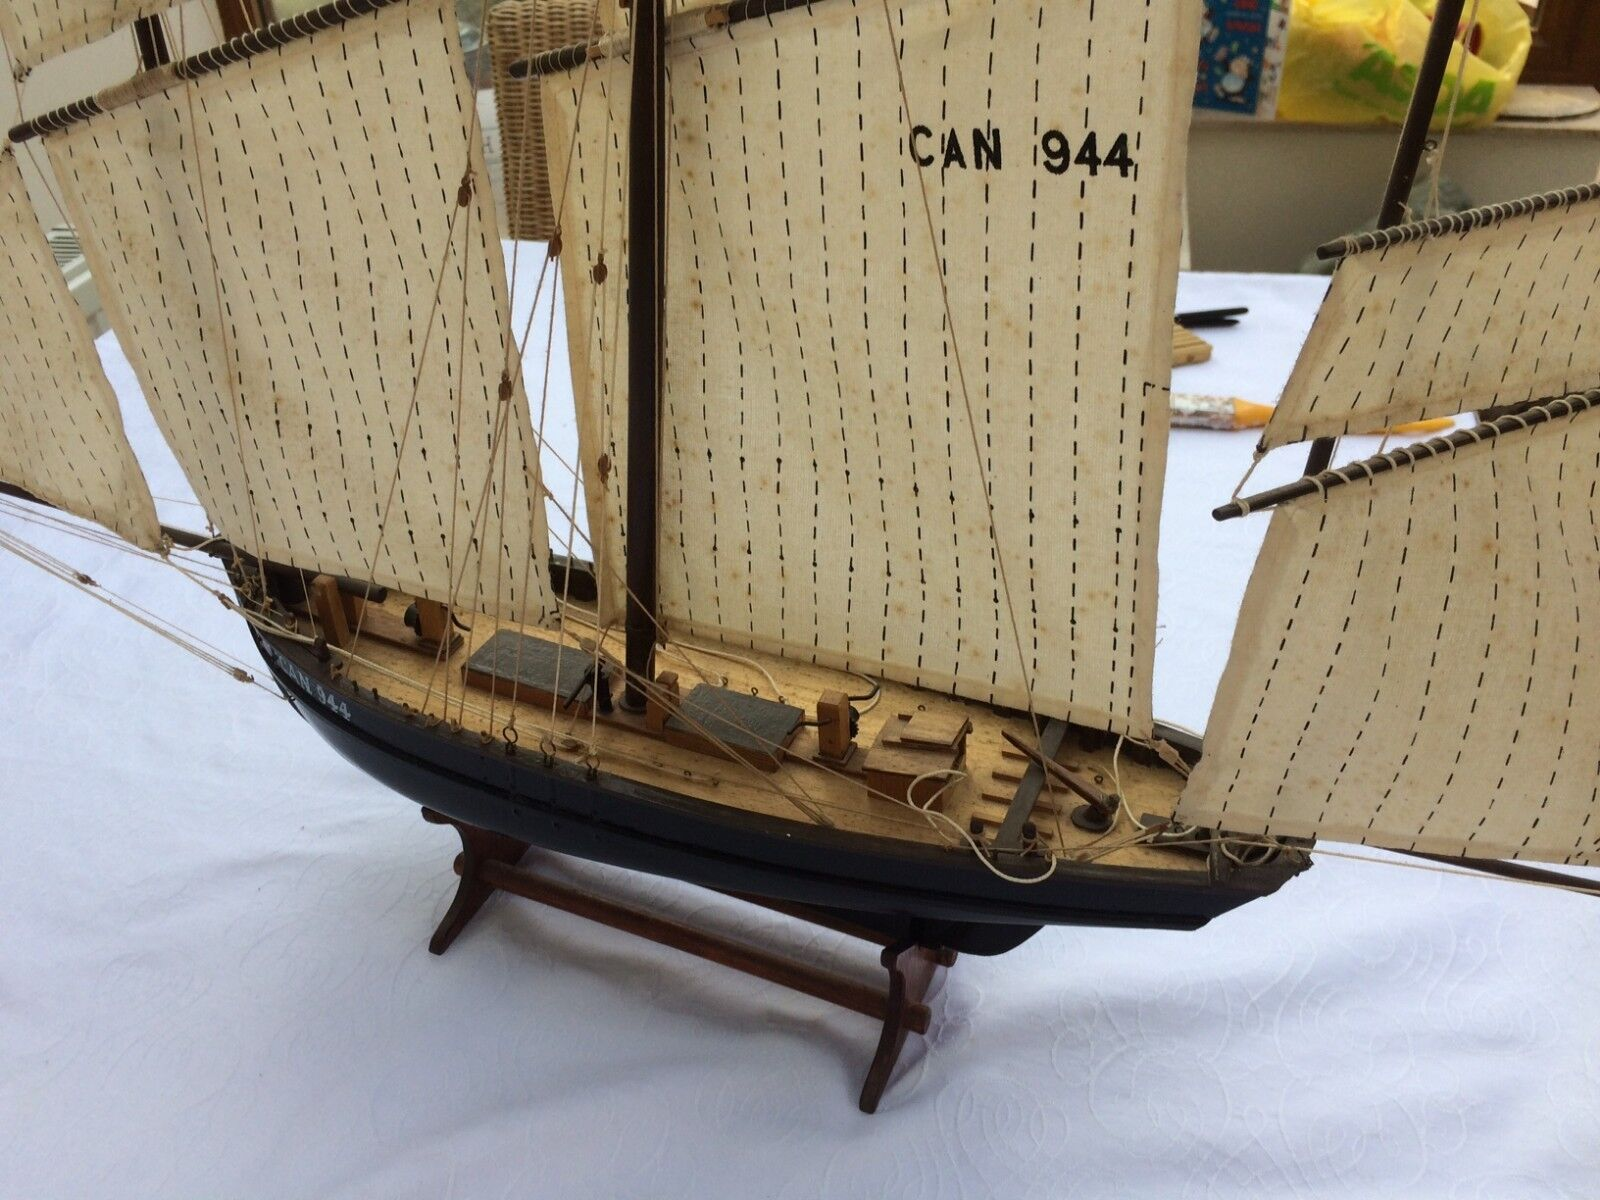 Hand made wooden sailing ship - Les Trois Cancale CAN 944, 3 masts, fabric sails